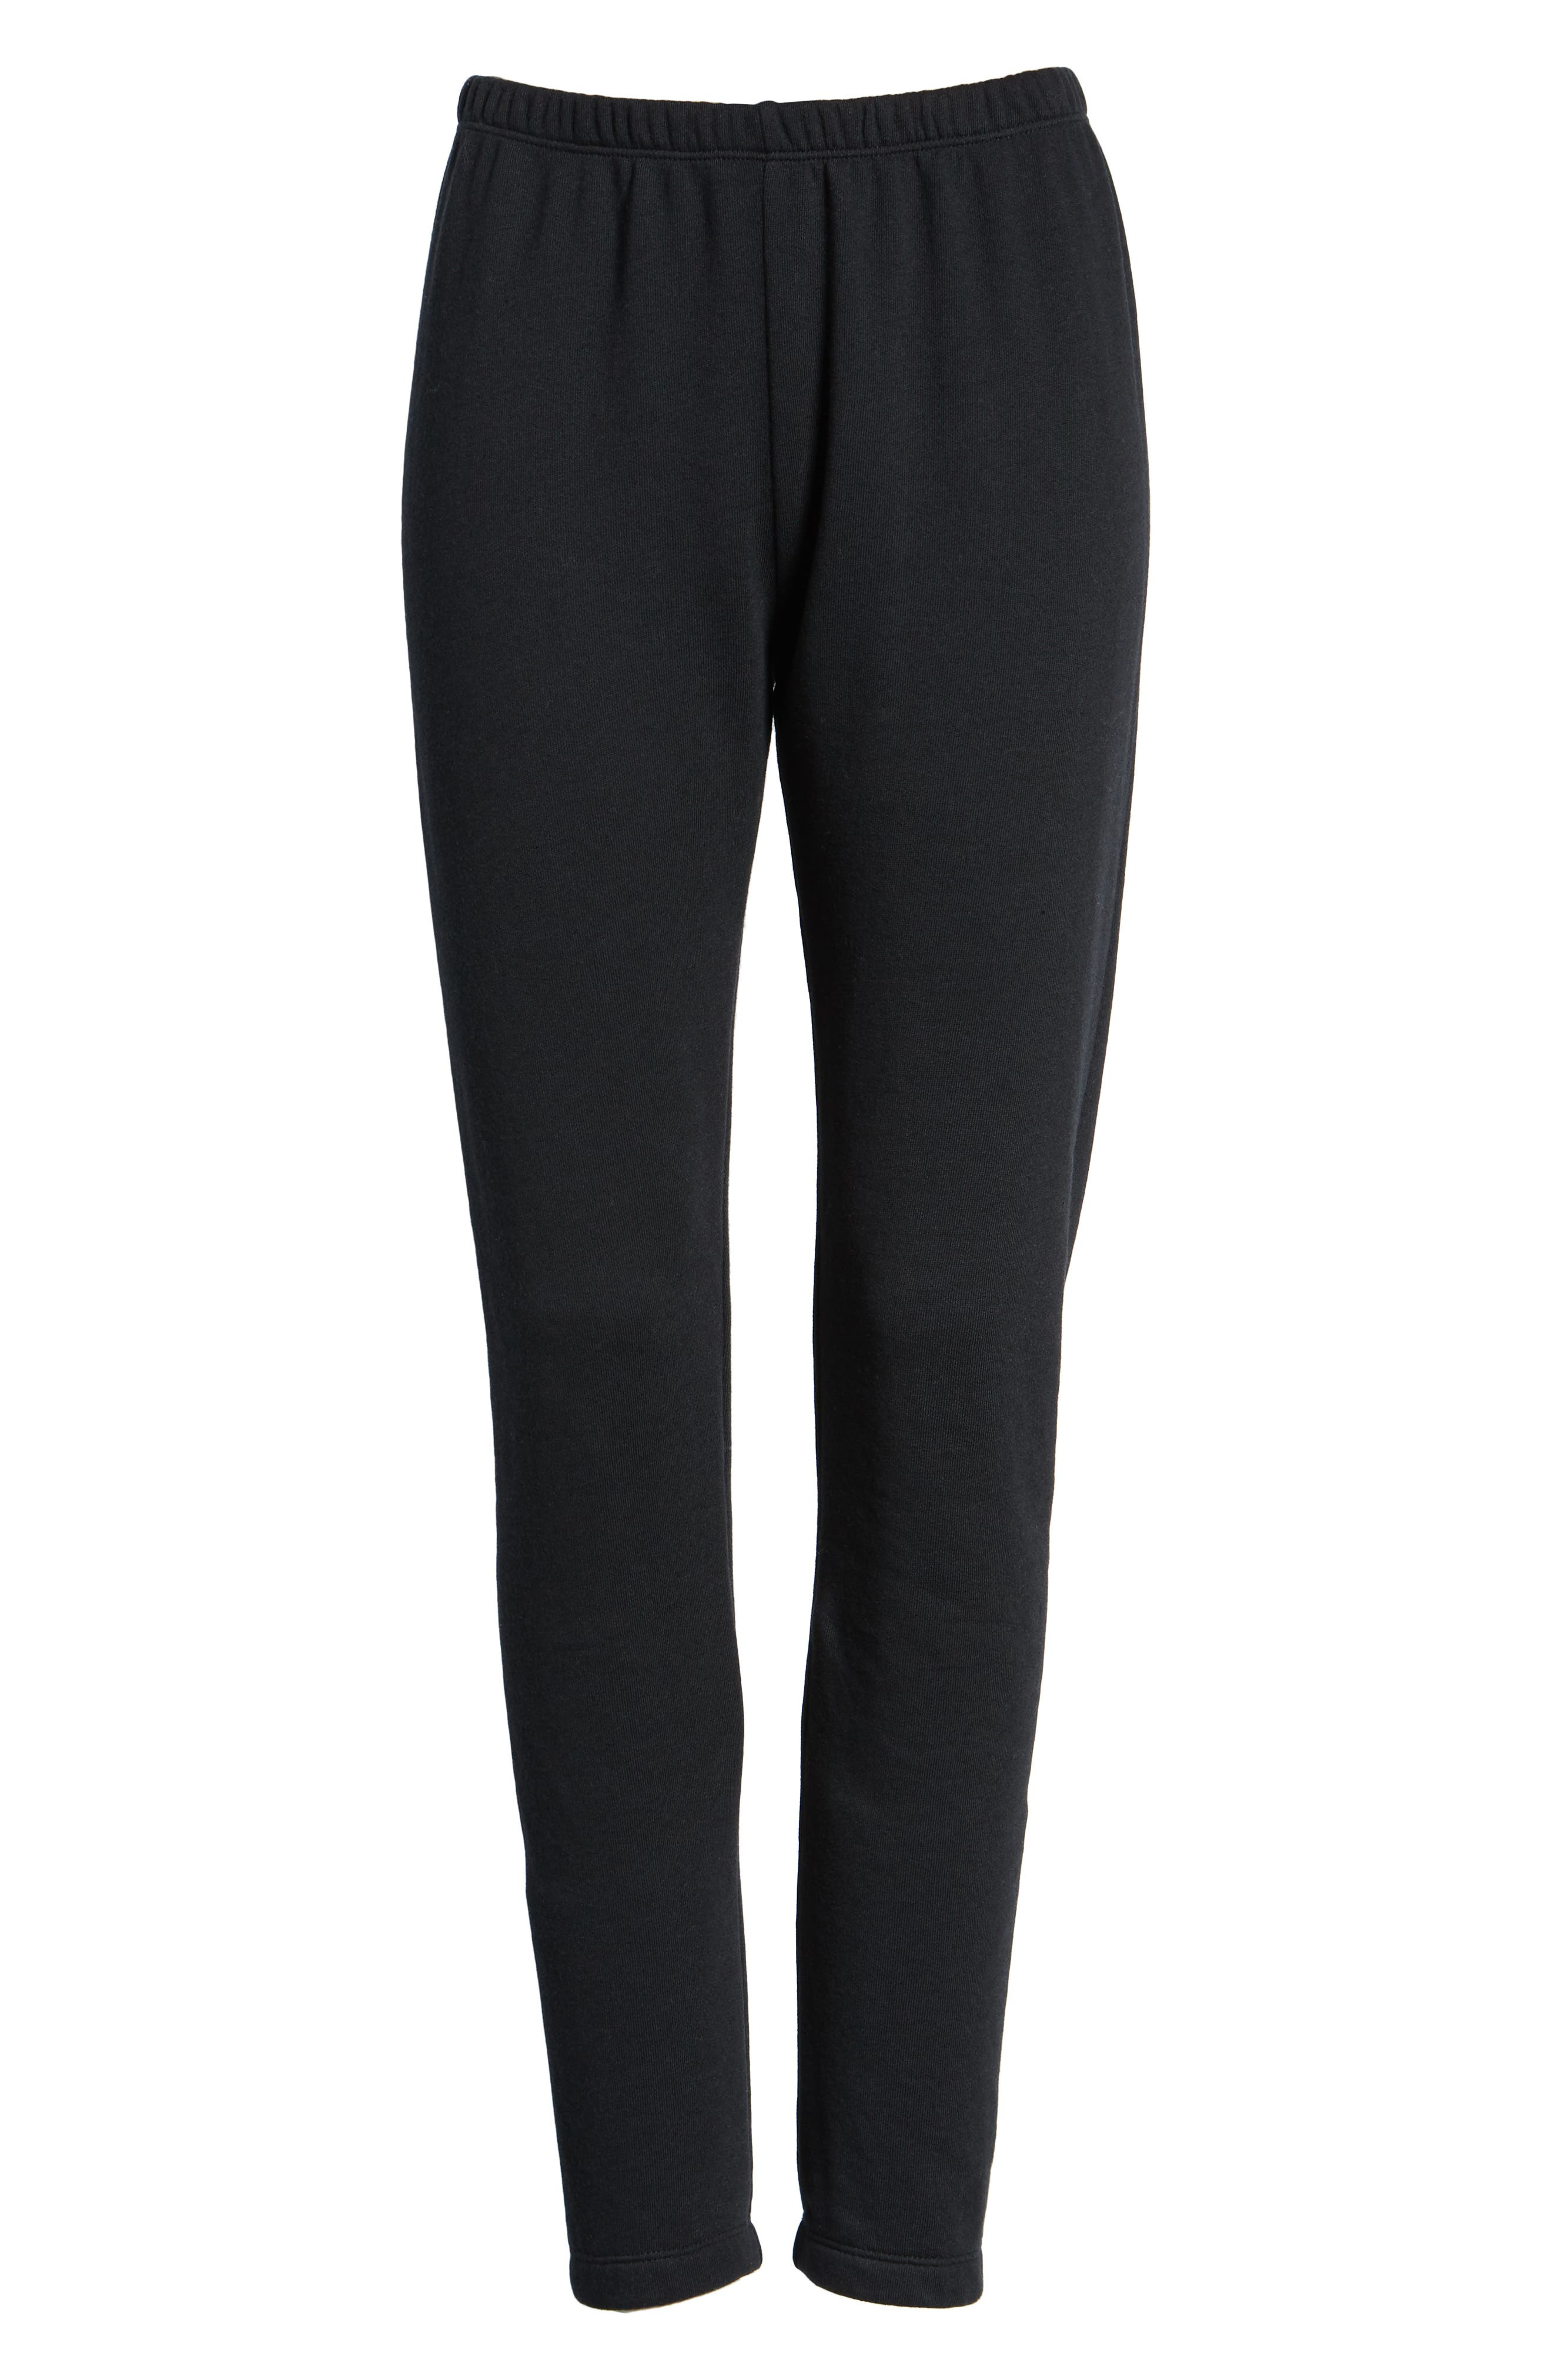 Knox Jogger Pants,                             Alternate thumbnail 7, color,                             JET BLACK